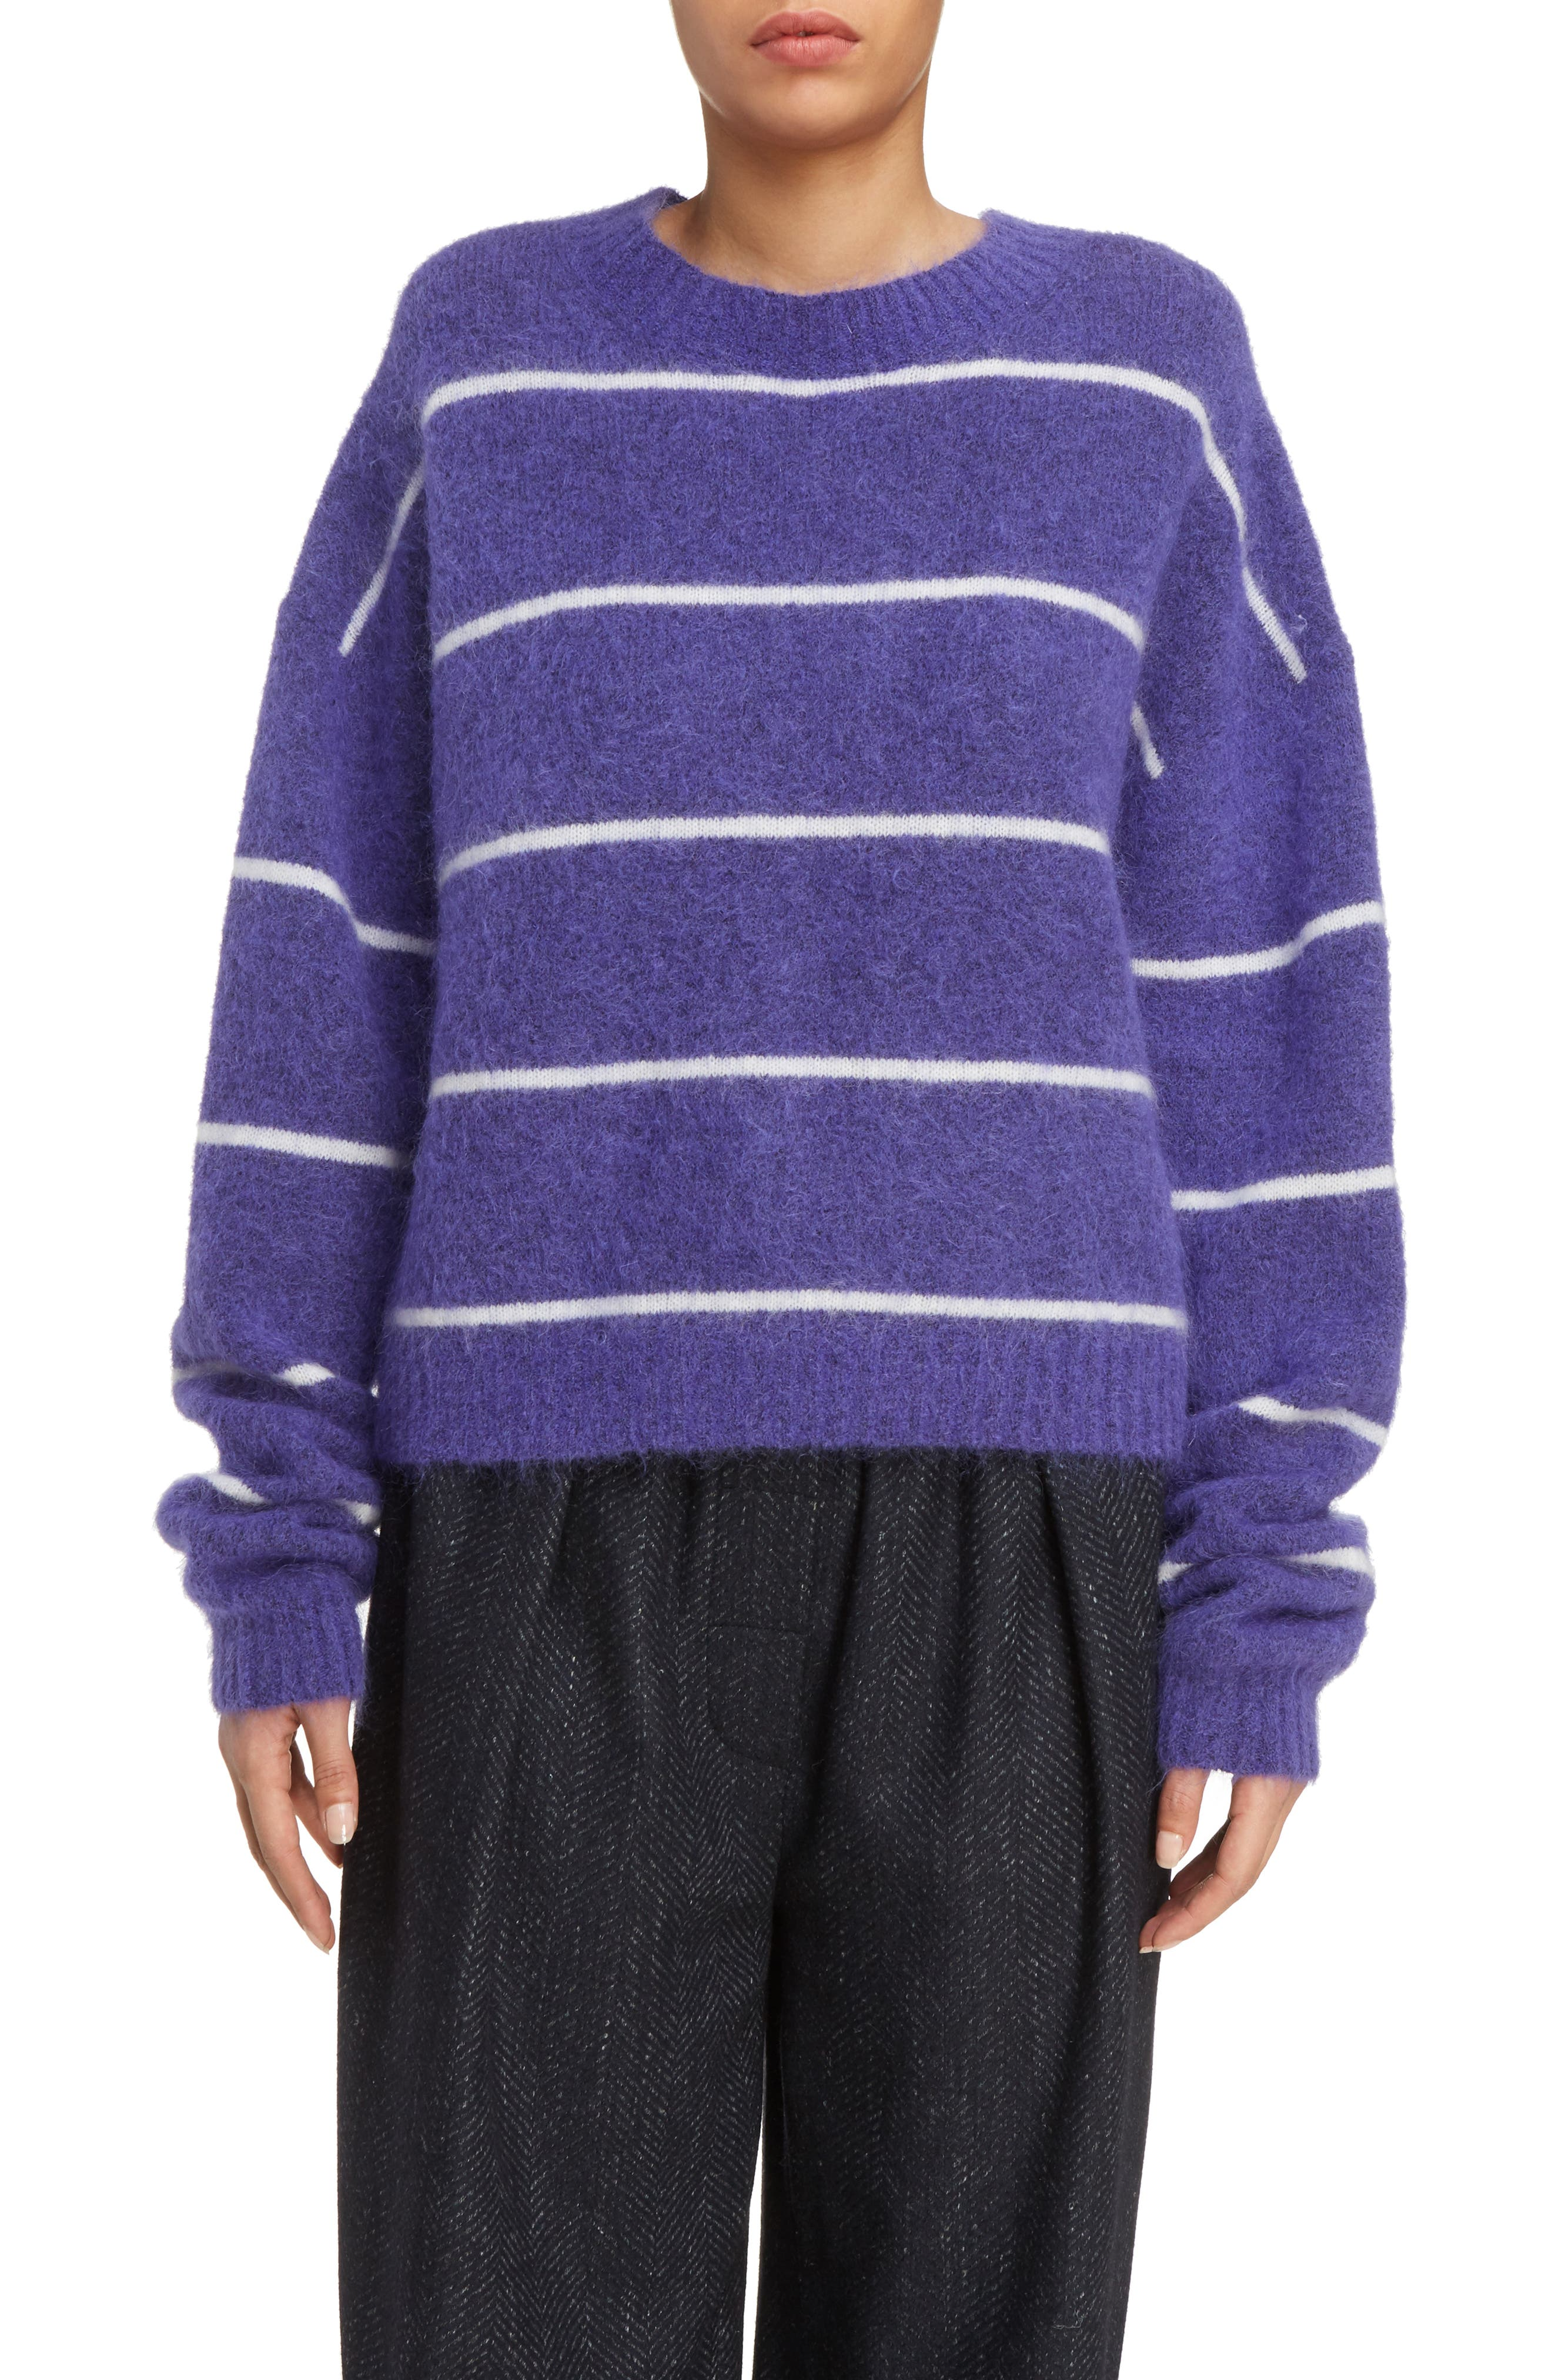 ACNE Studios Rhira Stripe Crewneck Sweater